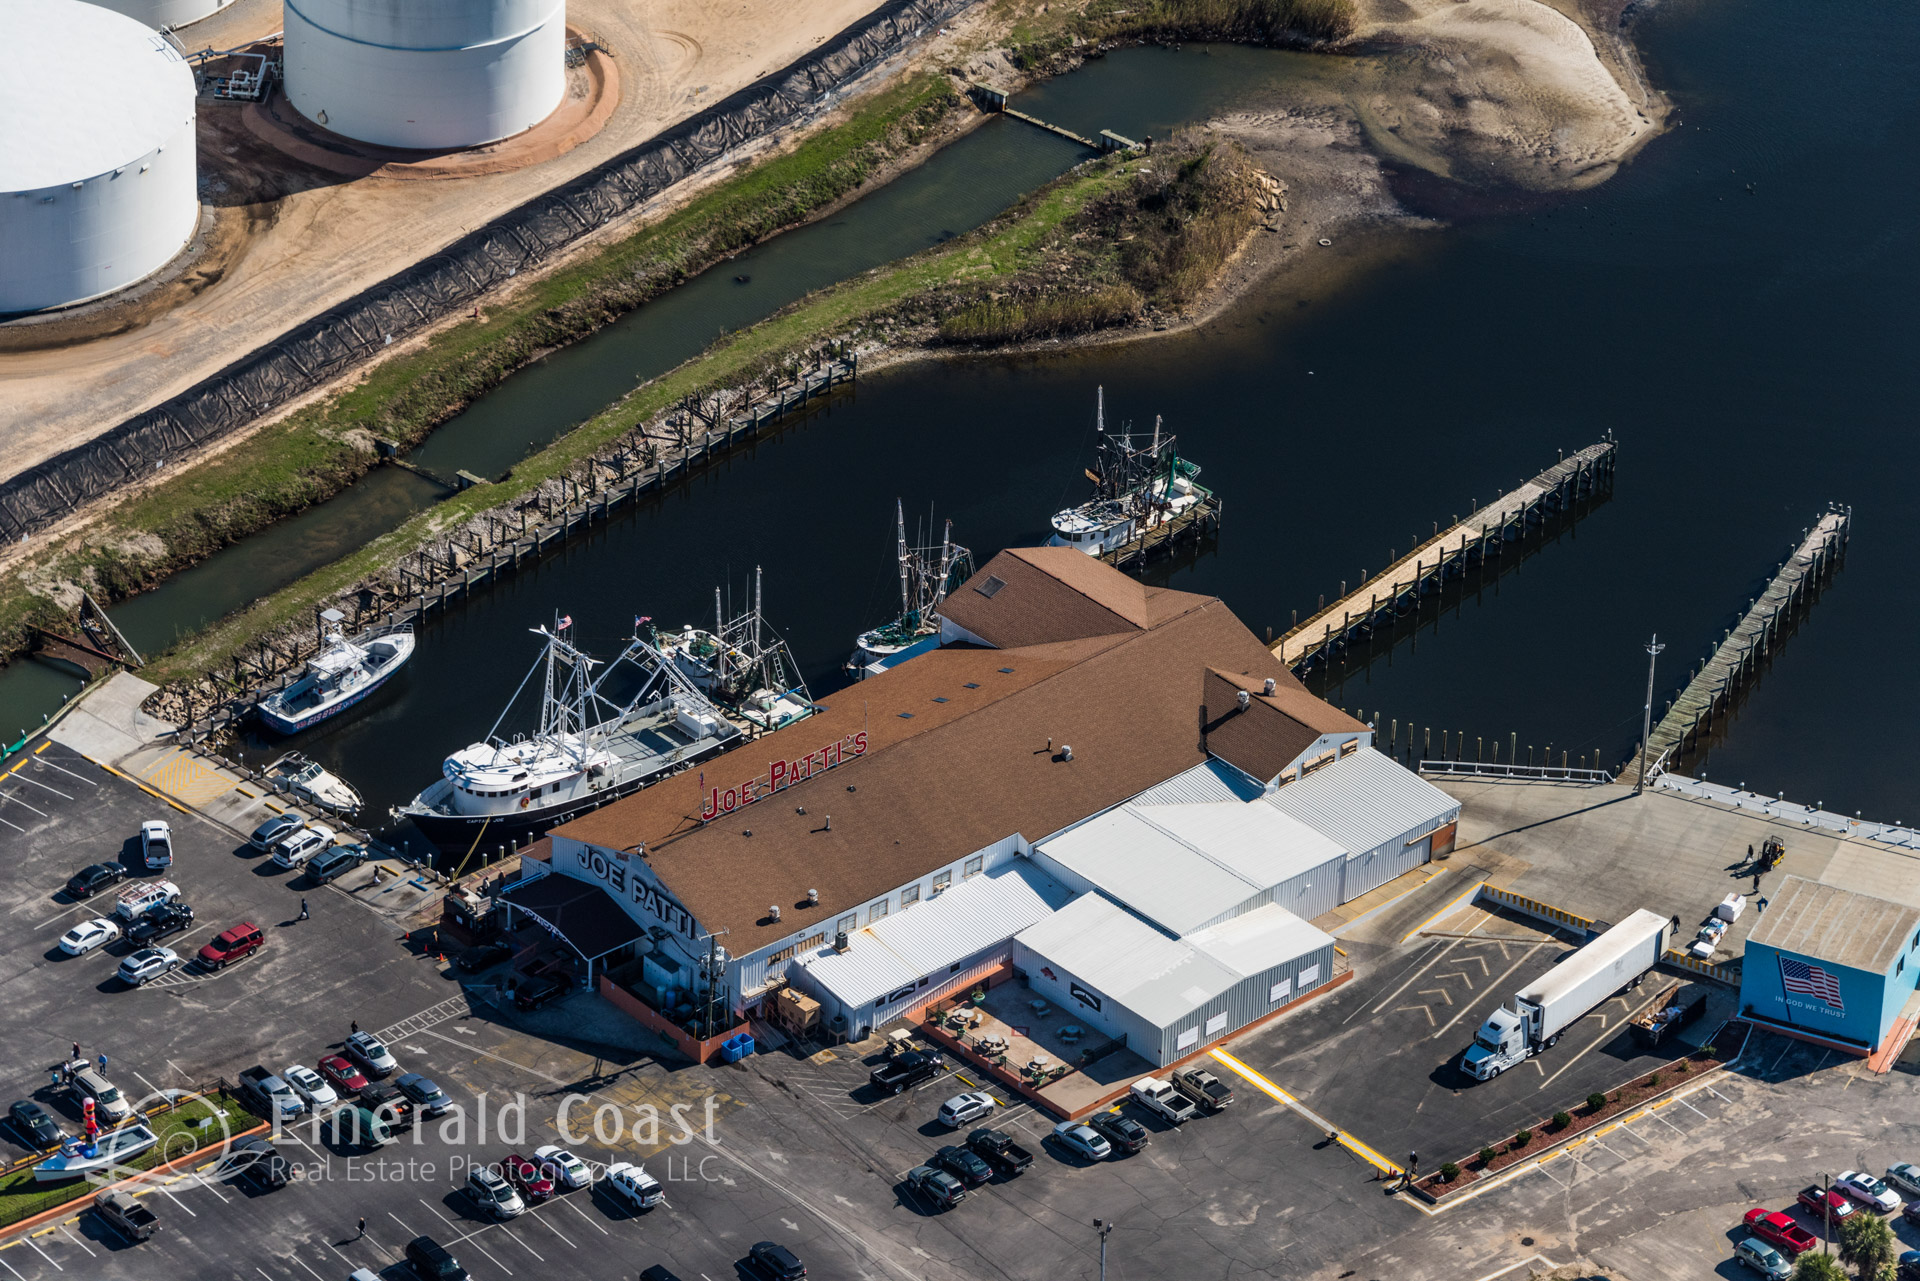 Aerial photo of the Joe Patt's Seafood